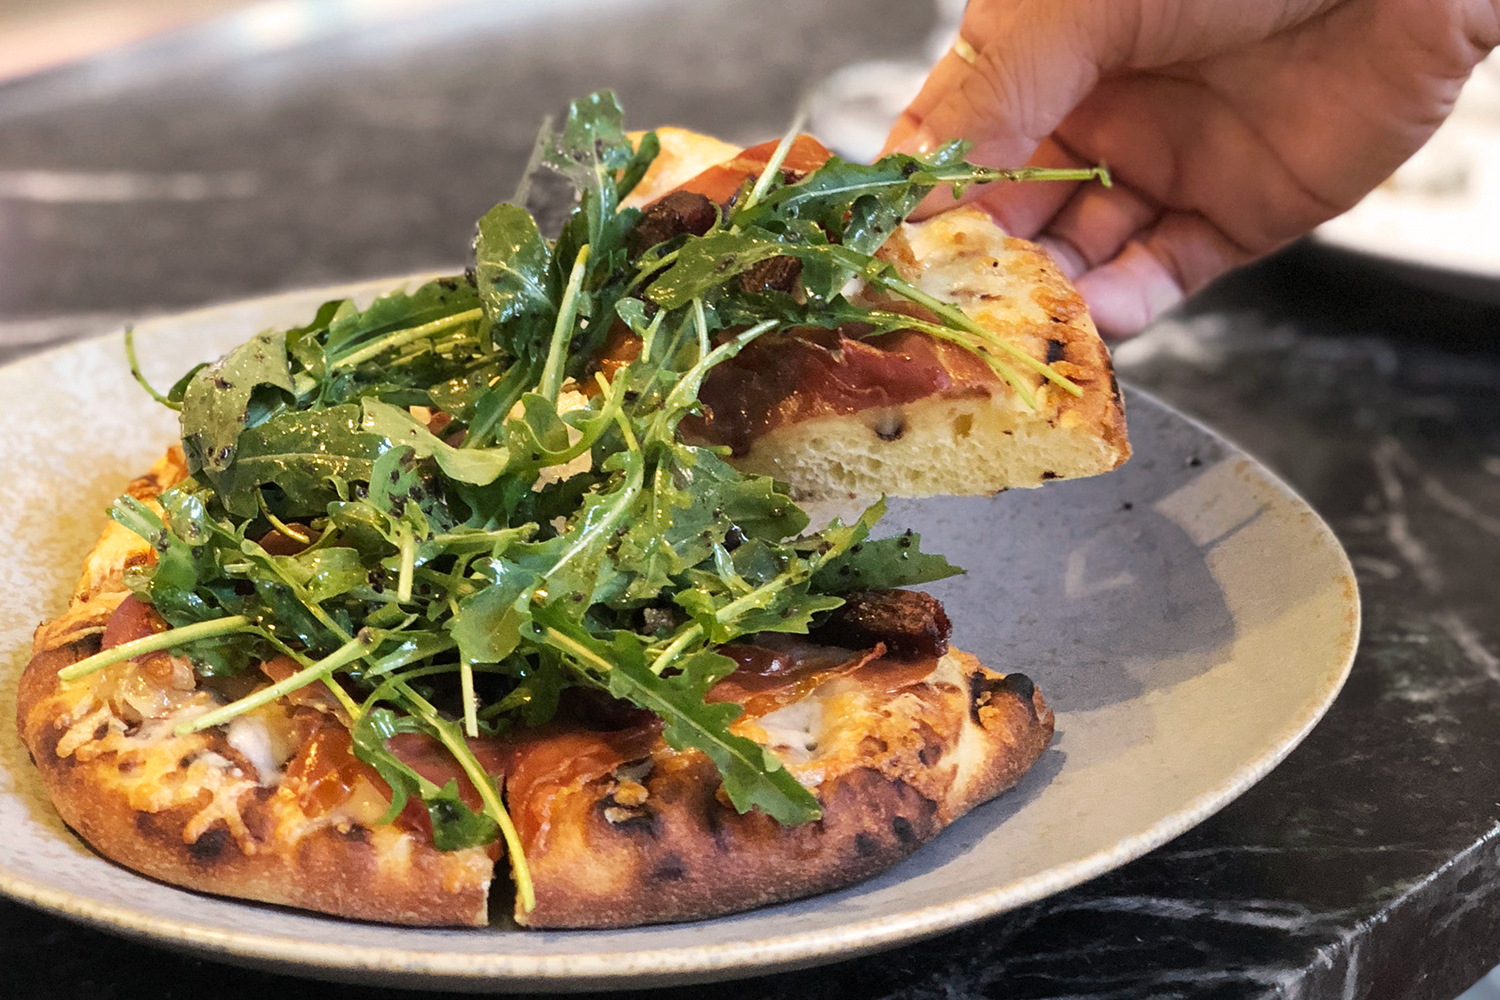 08commissary-sf-food-dining-flatbread